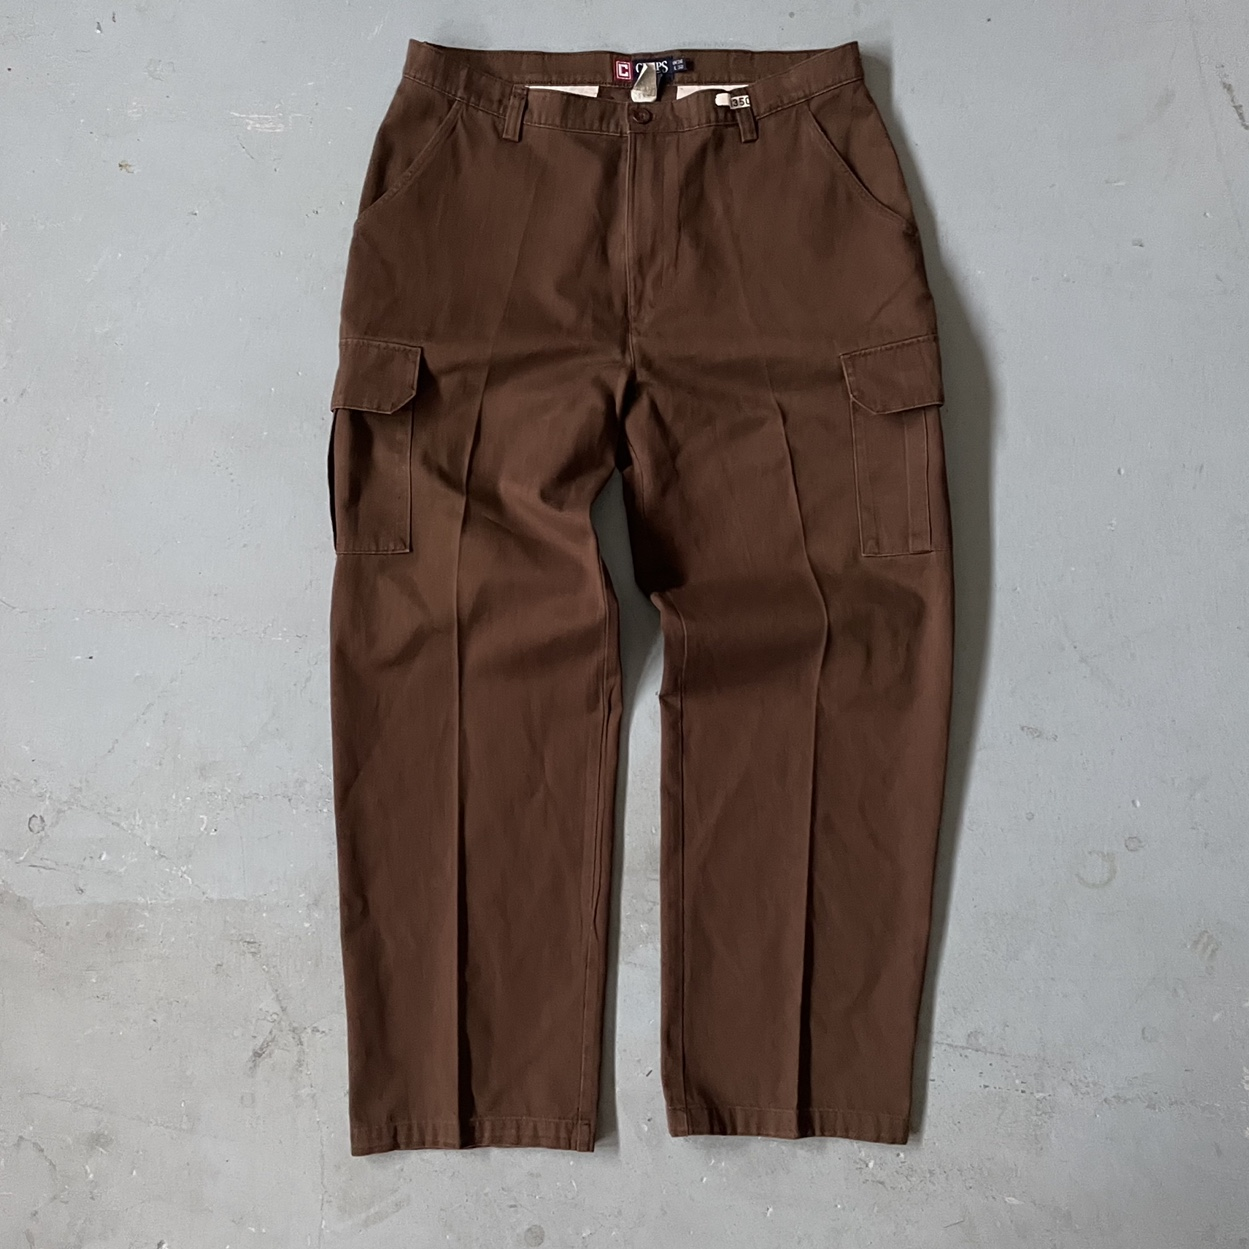 Product Image 1 - Vintage Chocolate Brown Chaps Travis